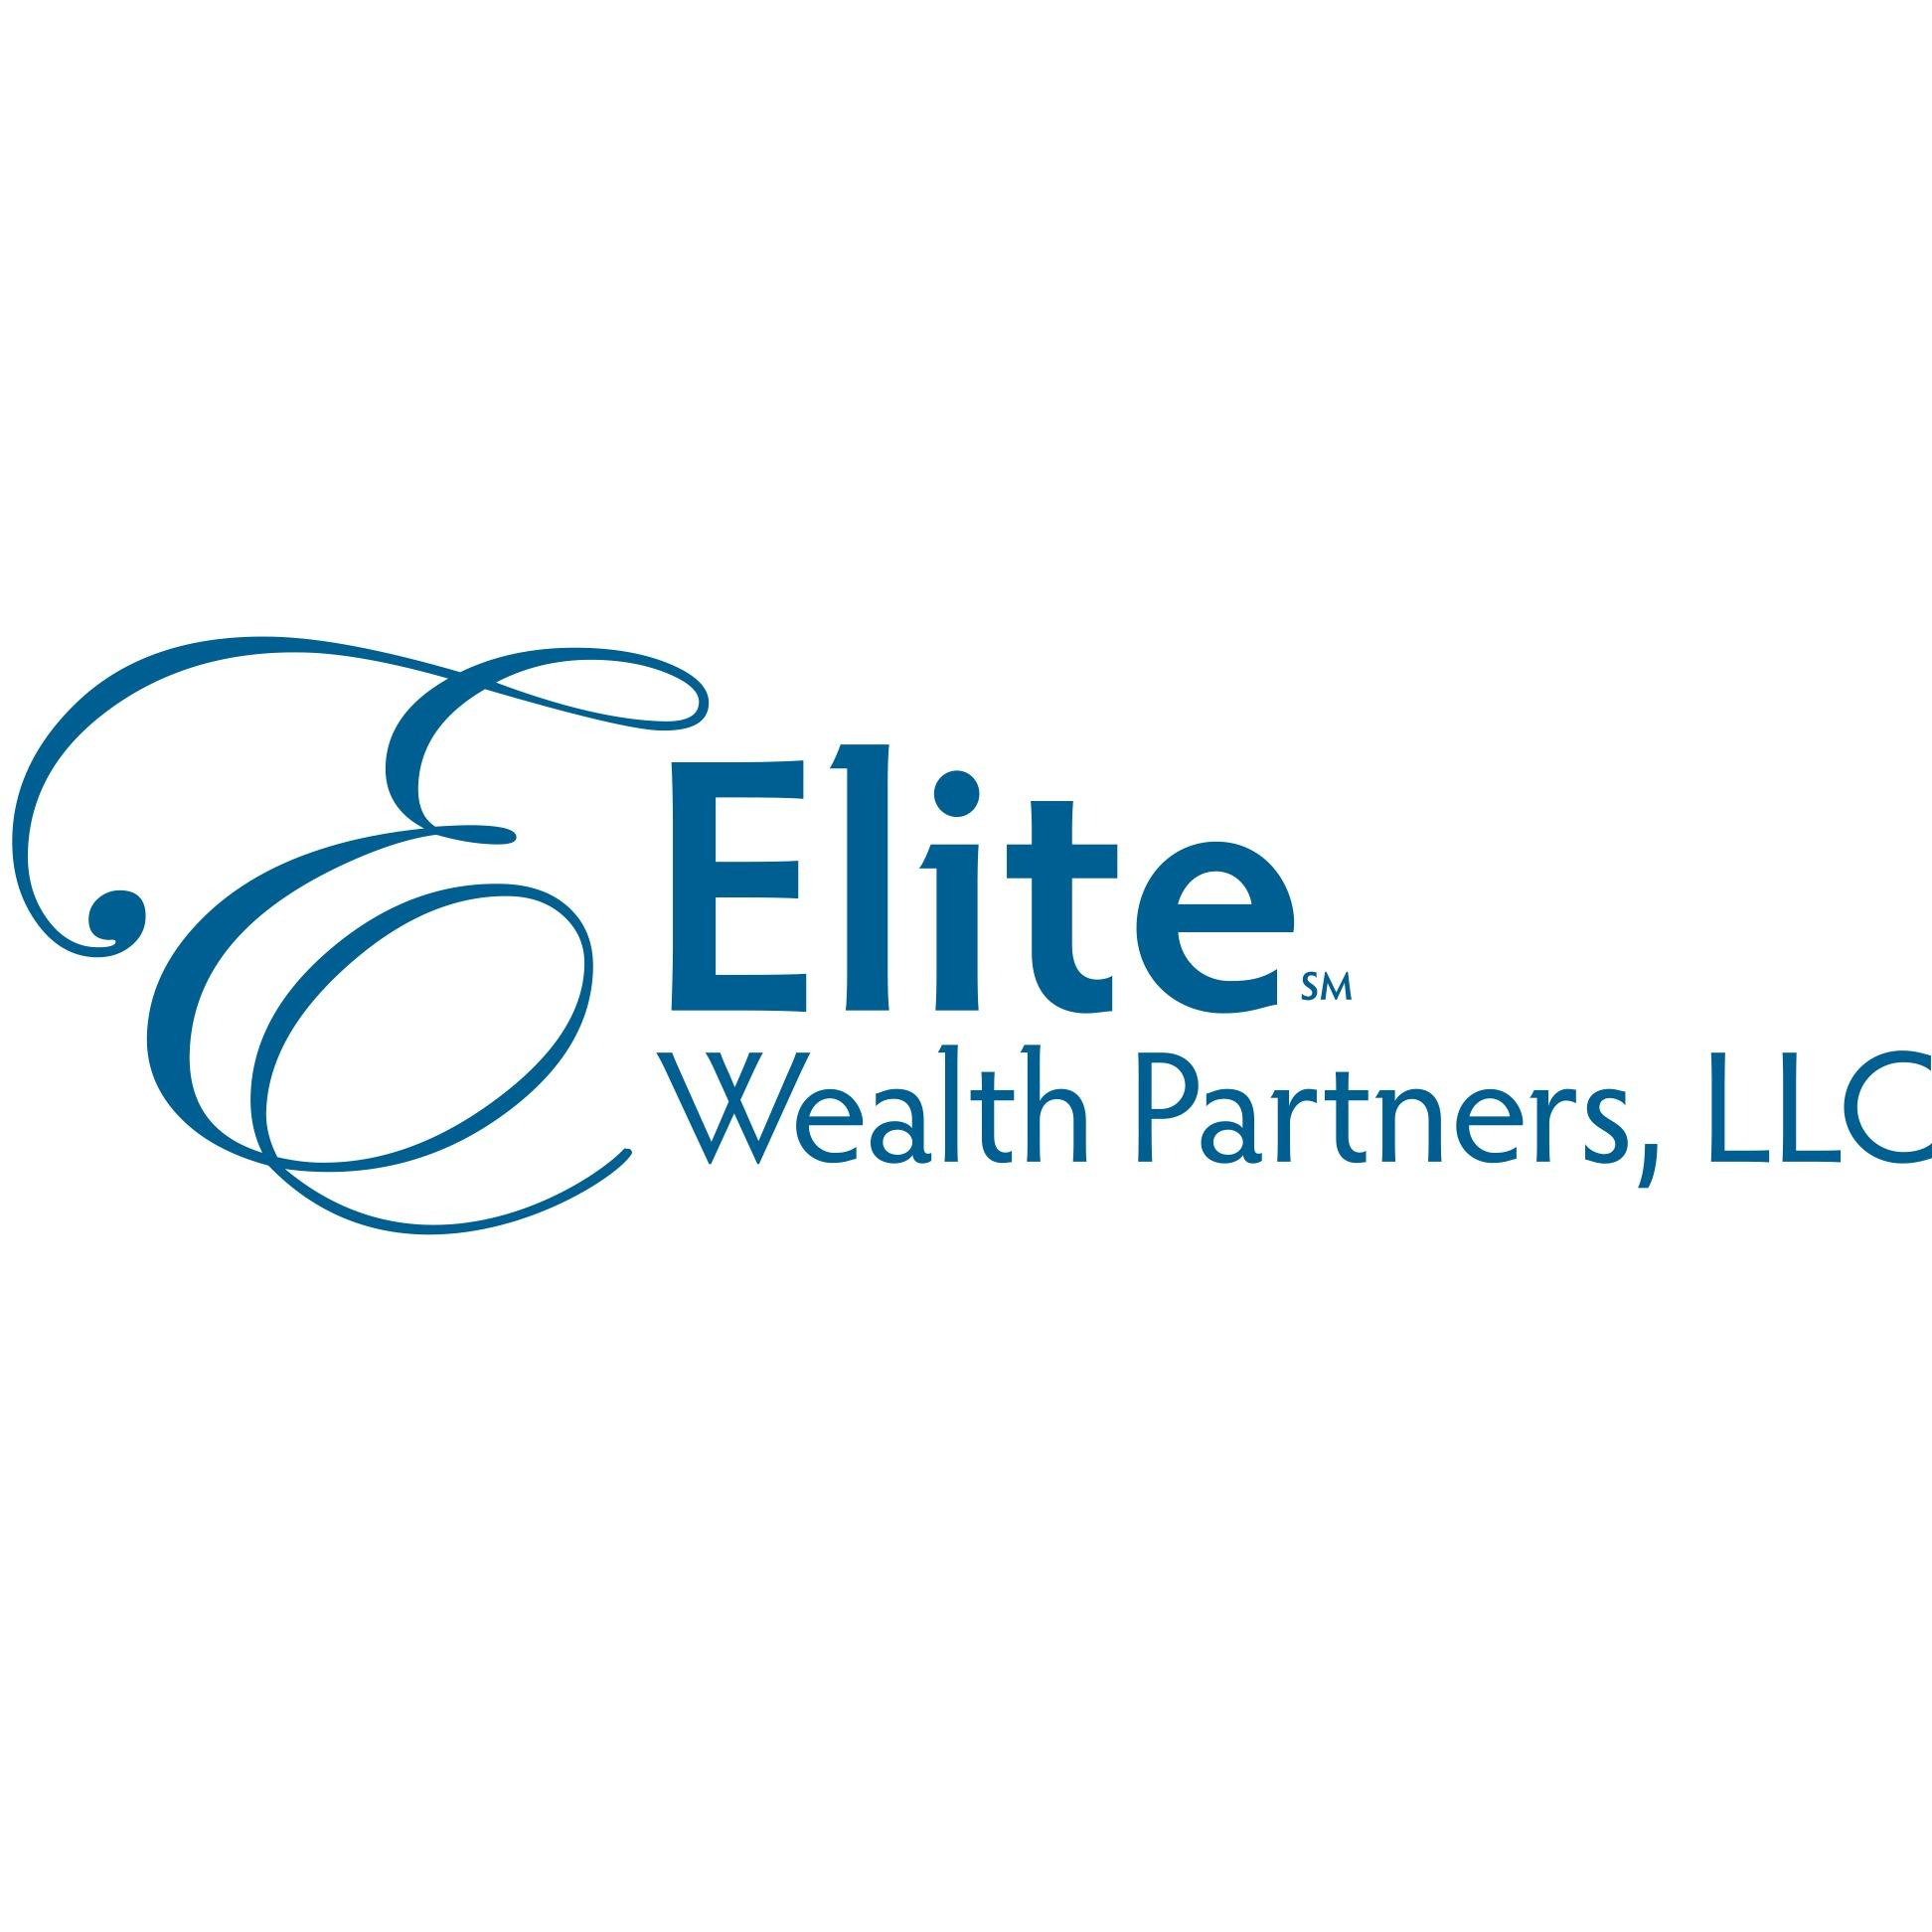 Elite Wealth Partners, LLC